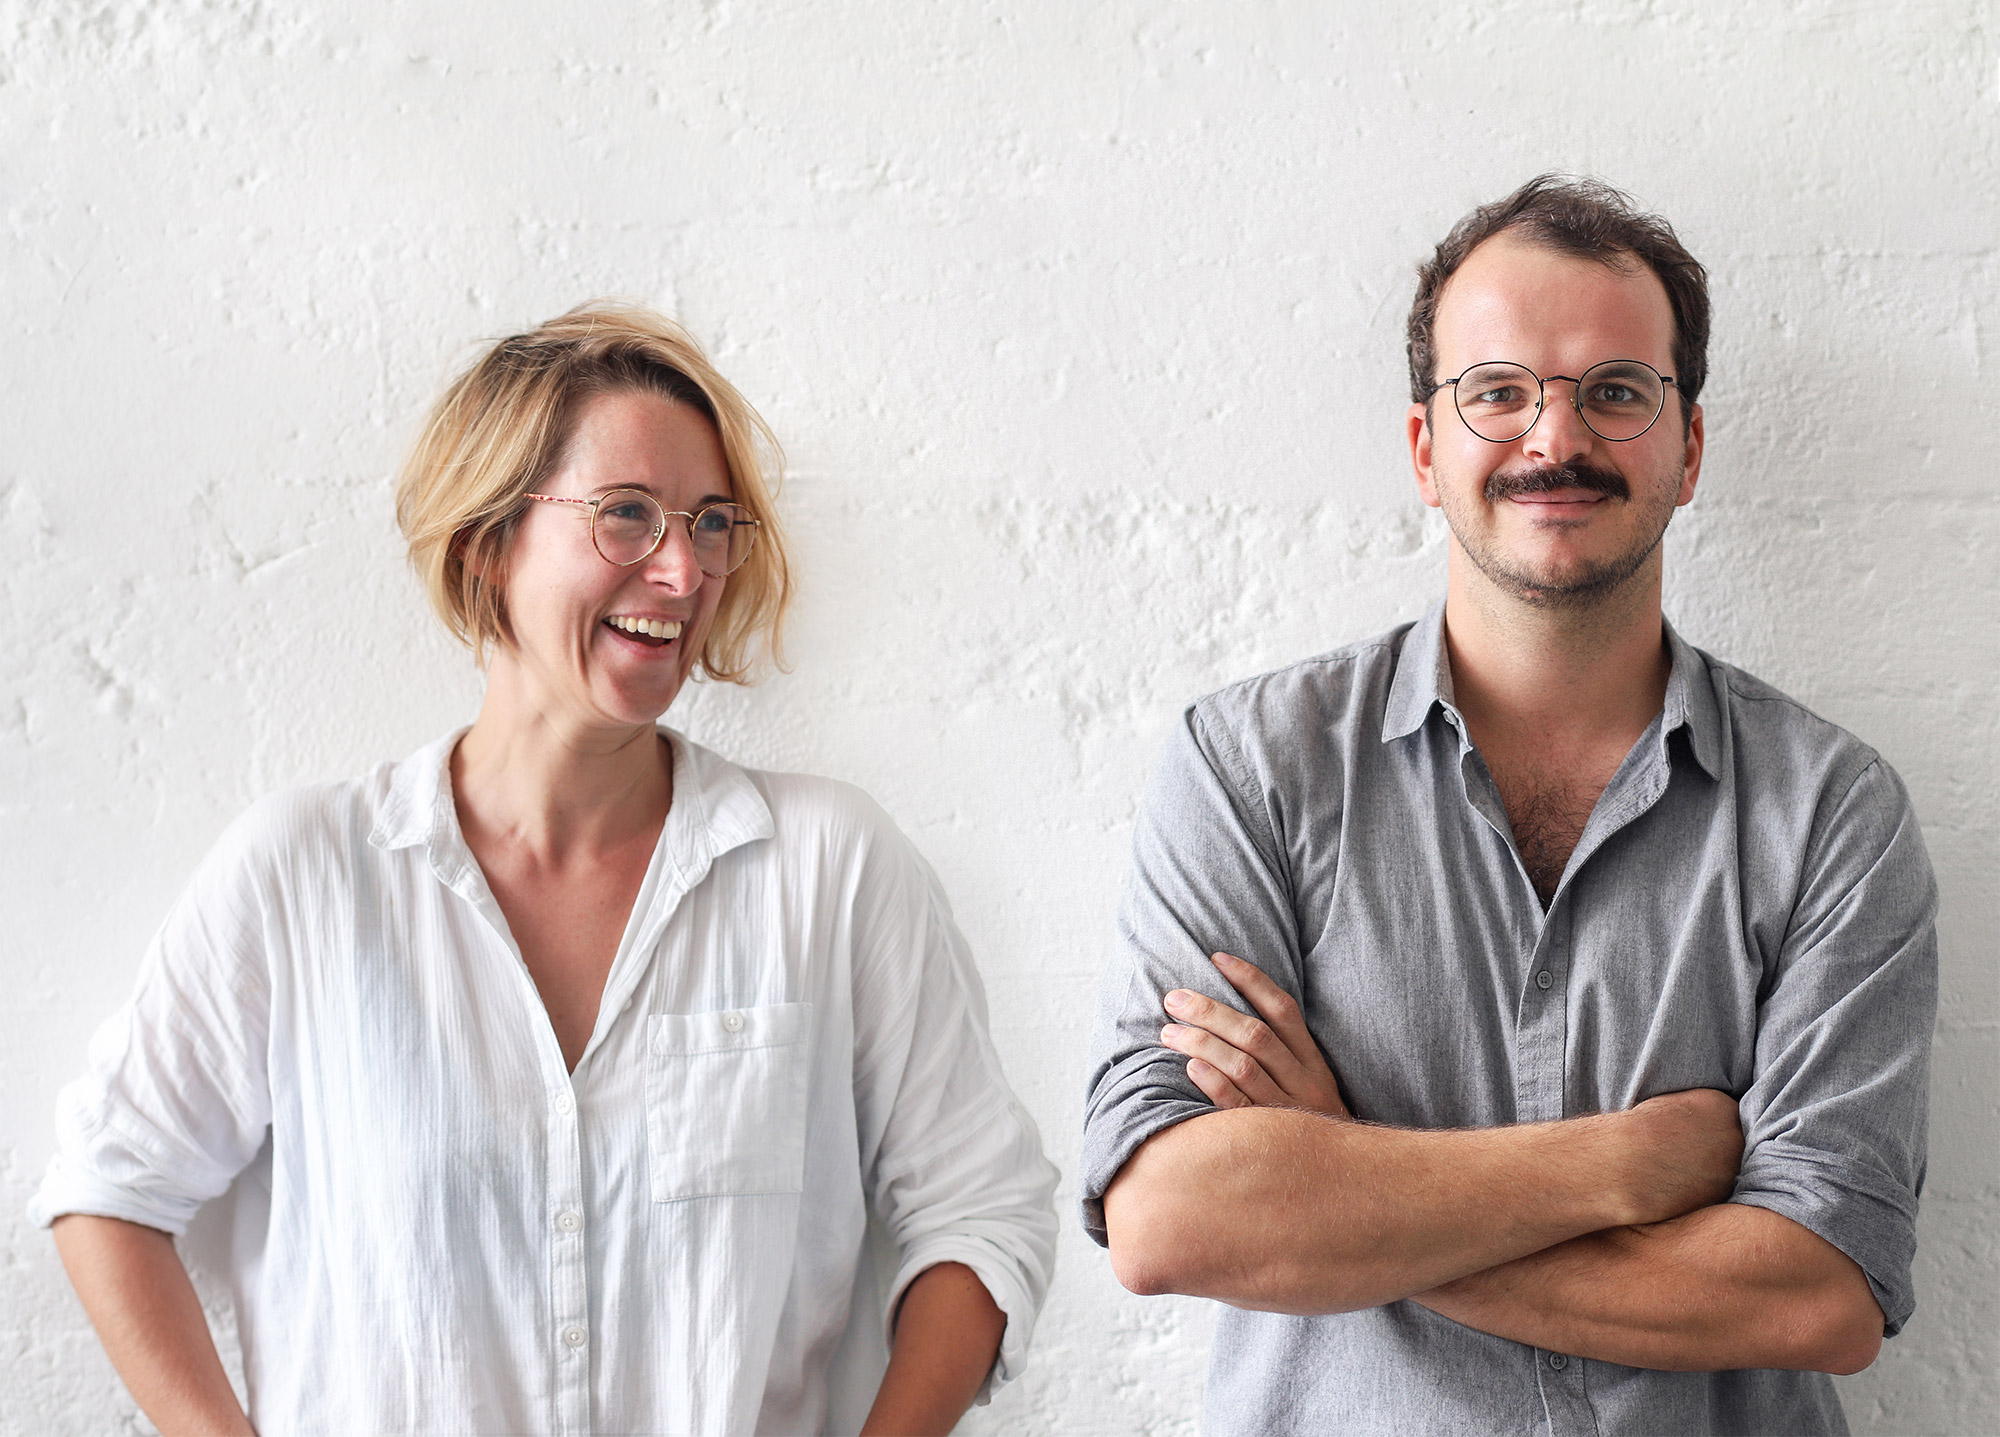 The founding team of erlich textil: Sarah and Benni